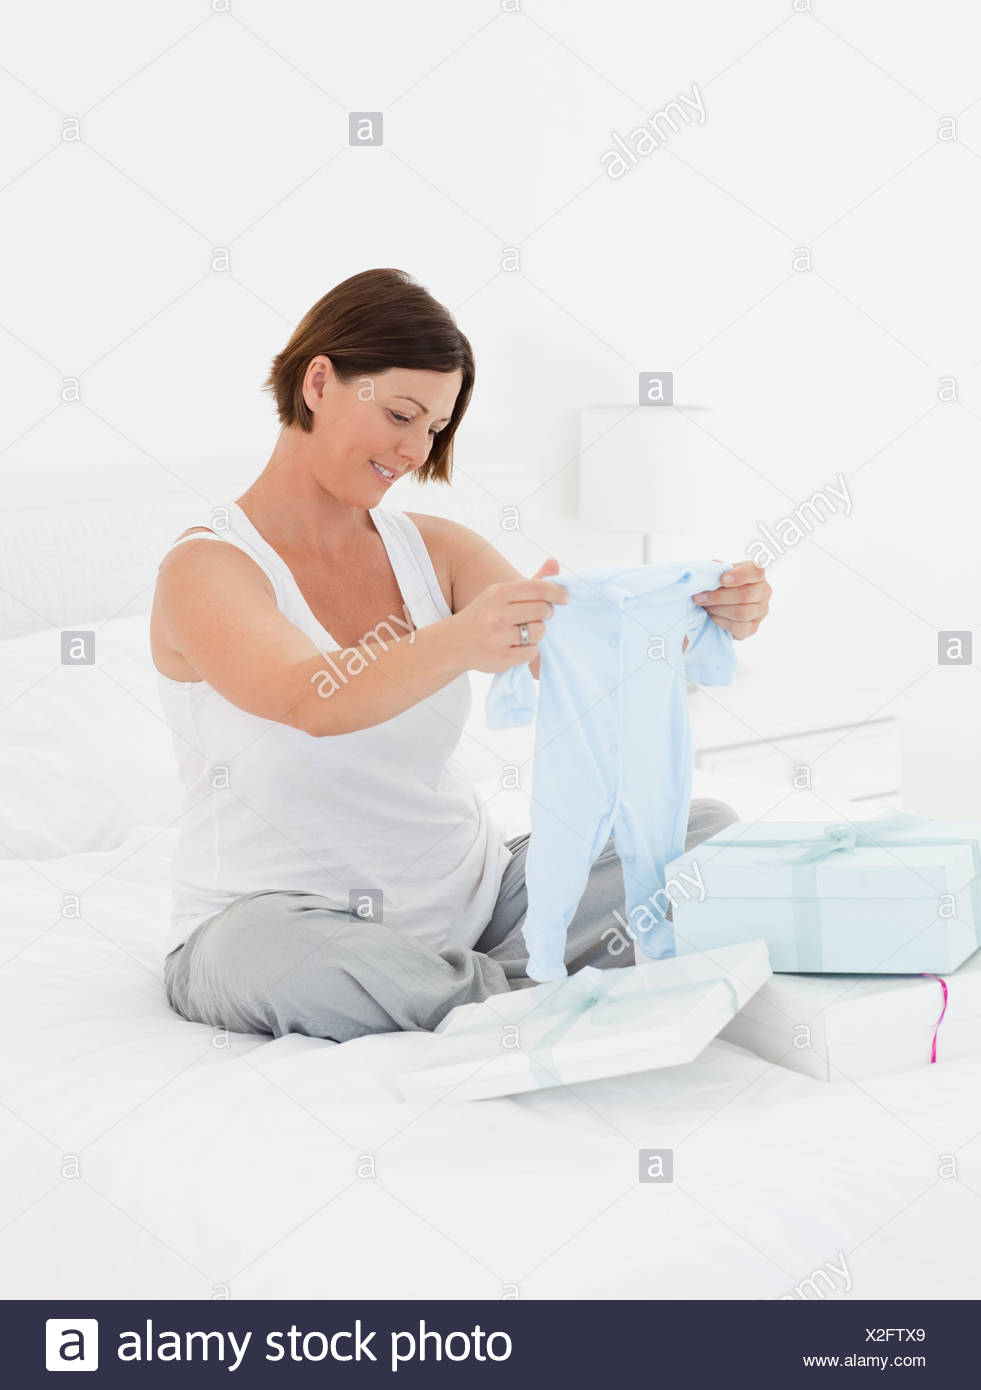 Woman with childrens clothes - Stock Image